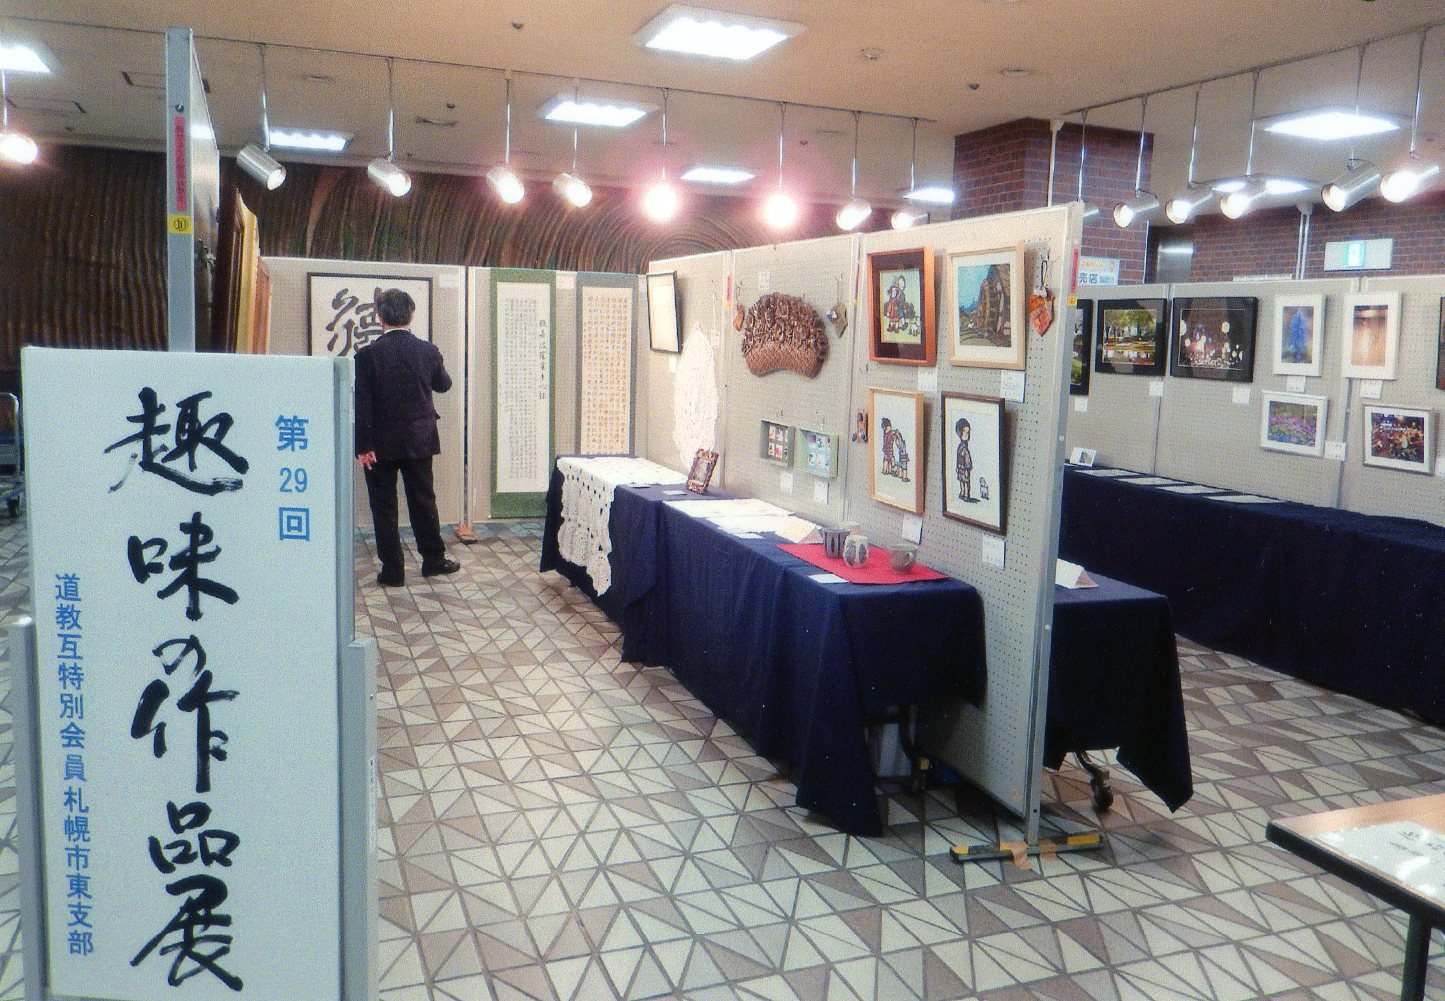 Exhibition of Hobby Works: 30th Anniversary Exhibitionimage